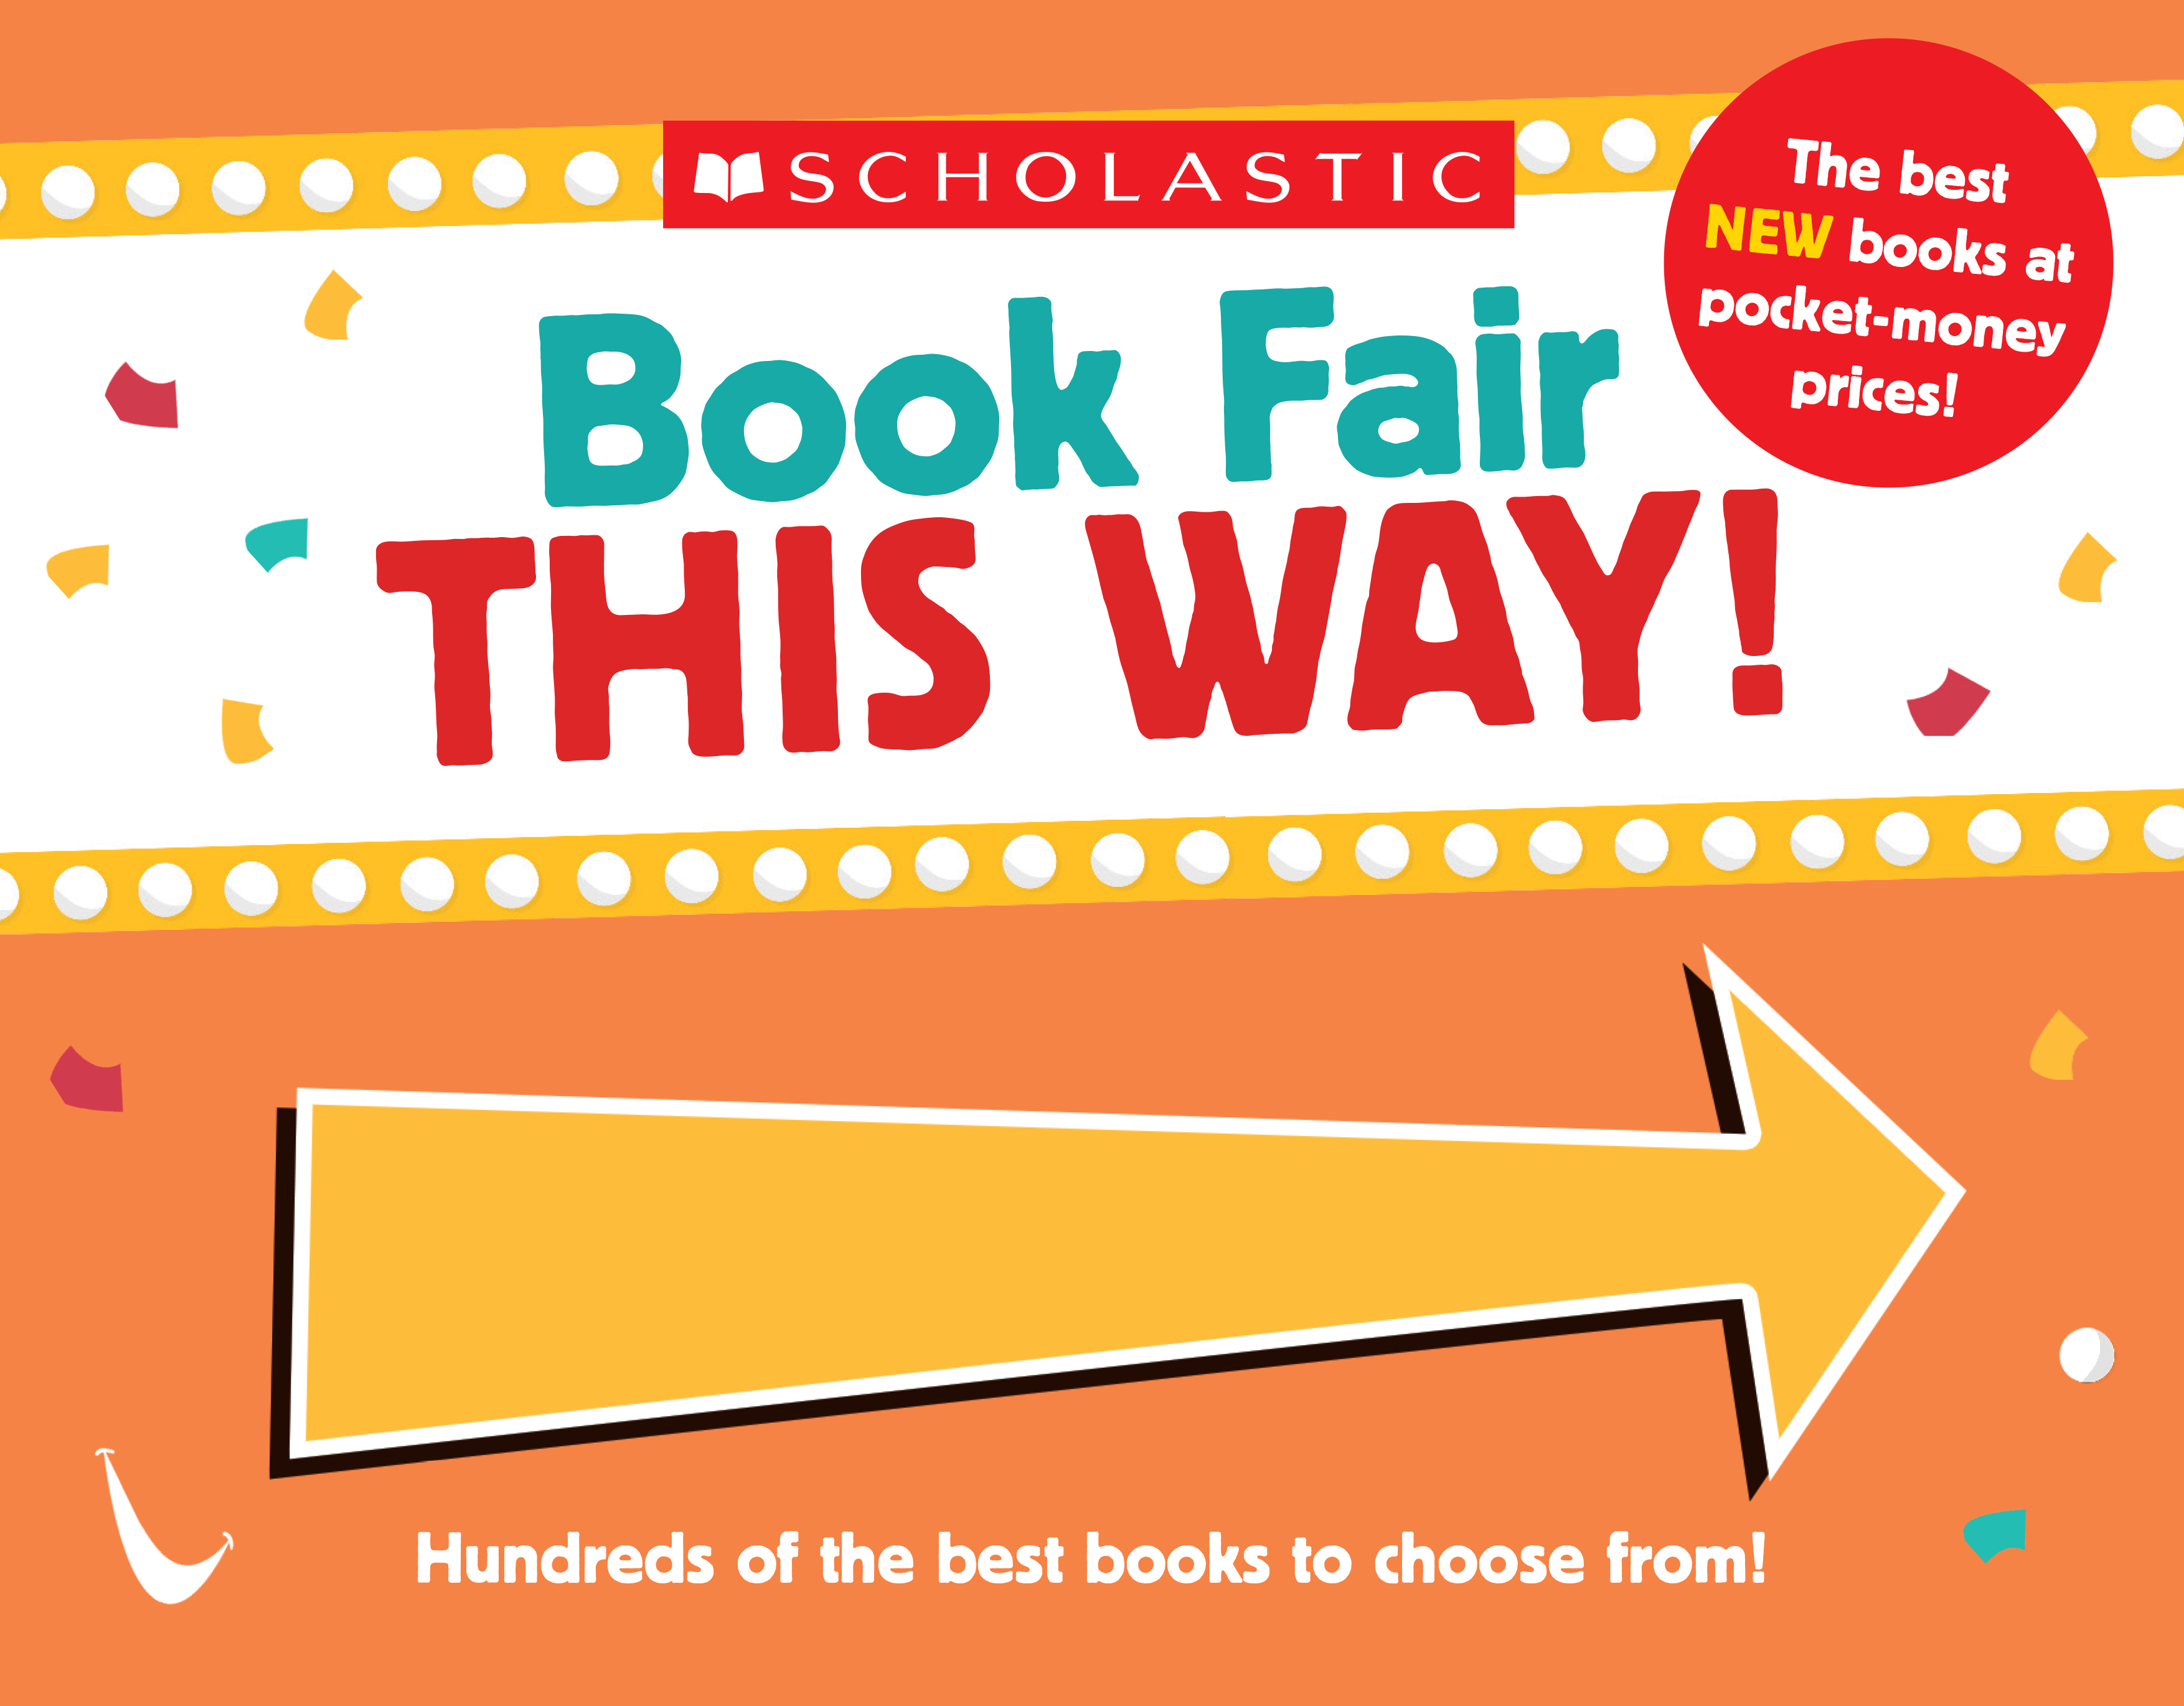 Free Resources Spread The Word Scholastic Book Fairs